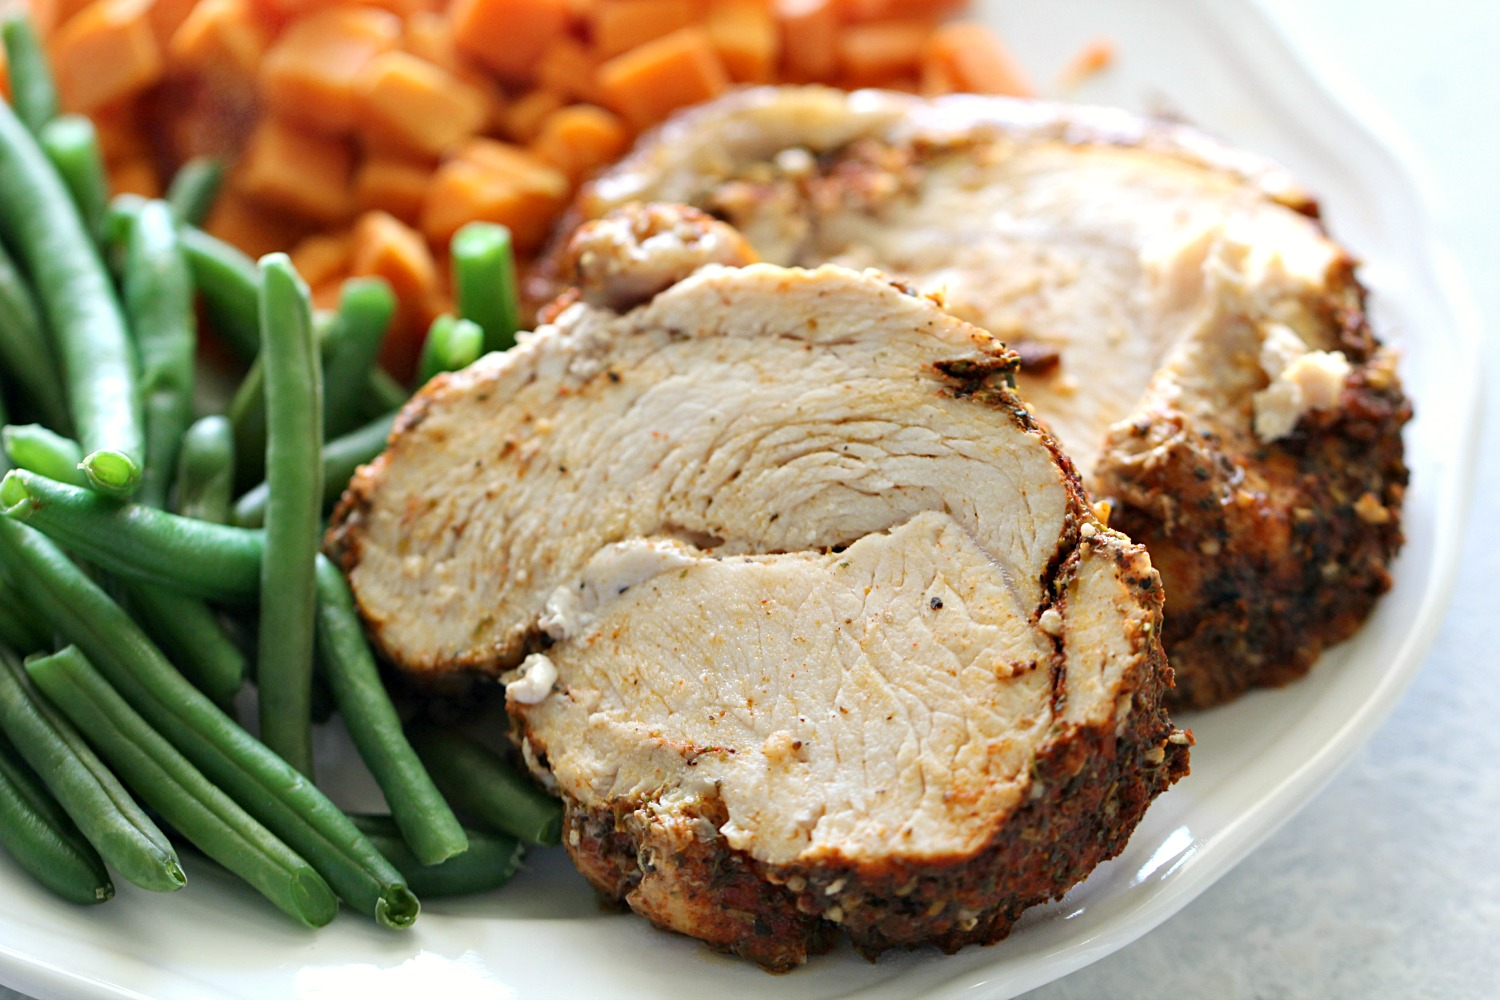 Instant Pot Turkey Breast cooked, sliced, and ready to serve on a plate of green beans and sweet potatoes